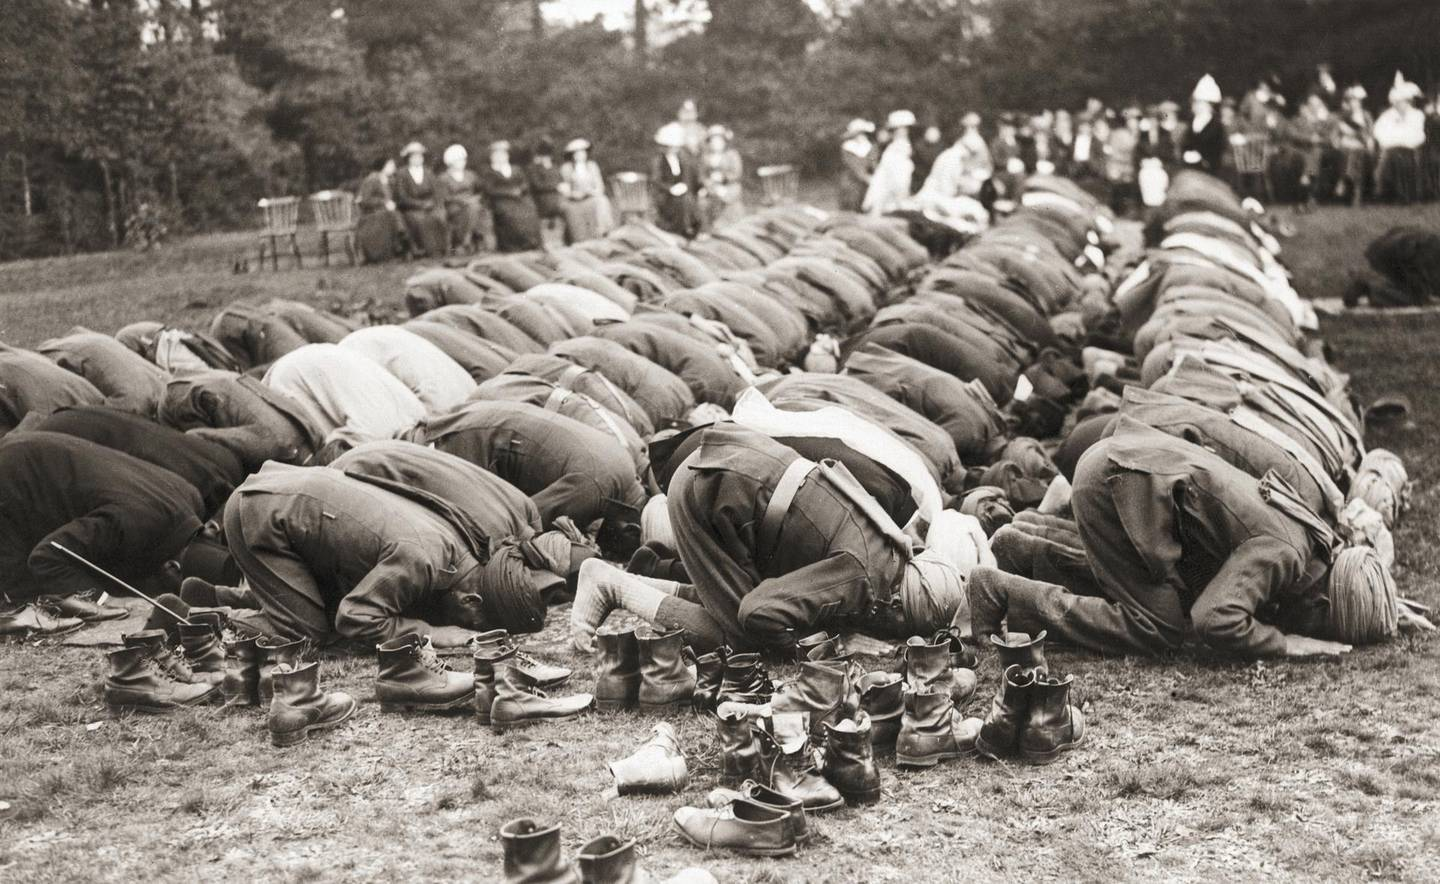 Indian troops serving with the British Army pray outside the Shah Jahan Mosque in Woking, Surrey, during the Muslim festival of Baqrid, or Eid al-Adha, (Festival of Sacrifice), circa 1916. (Photo by FPG/Hulton Archive/Getty Images)